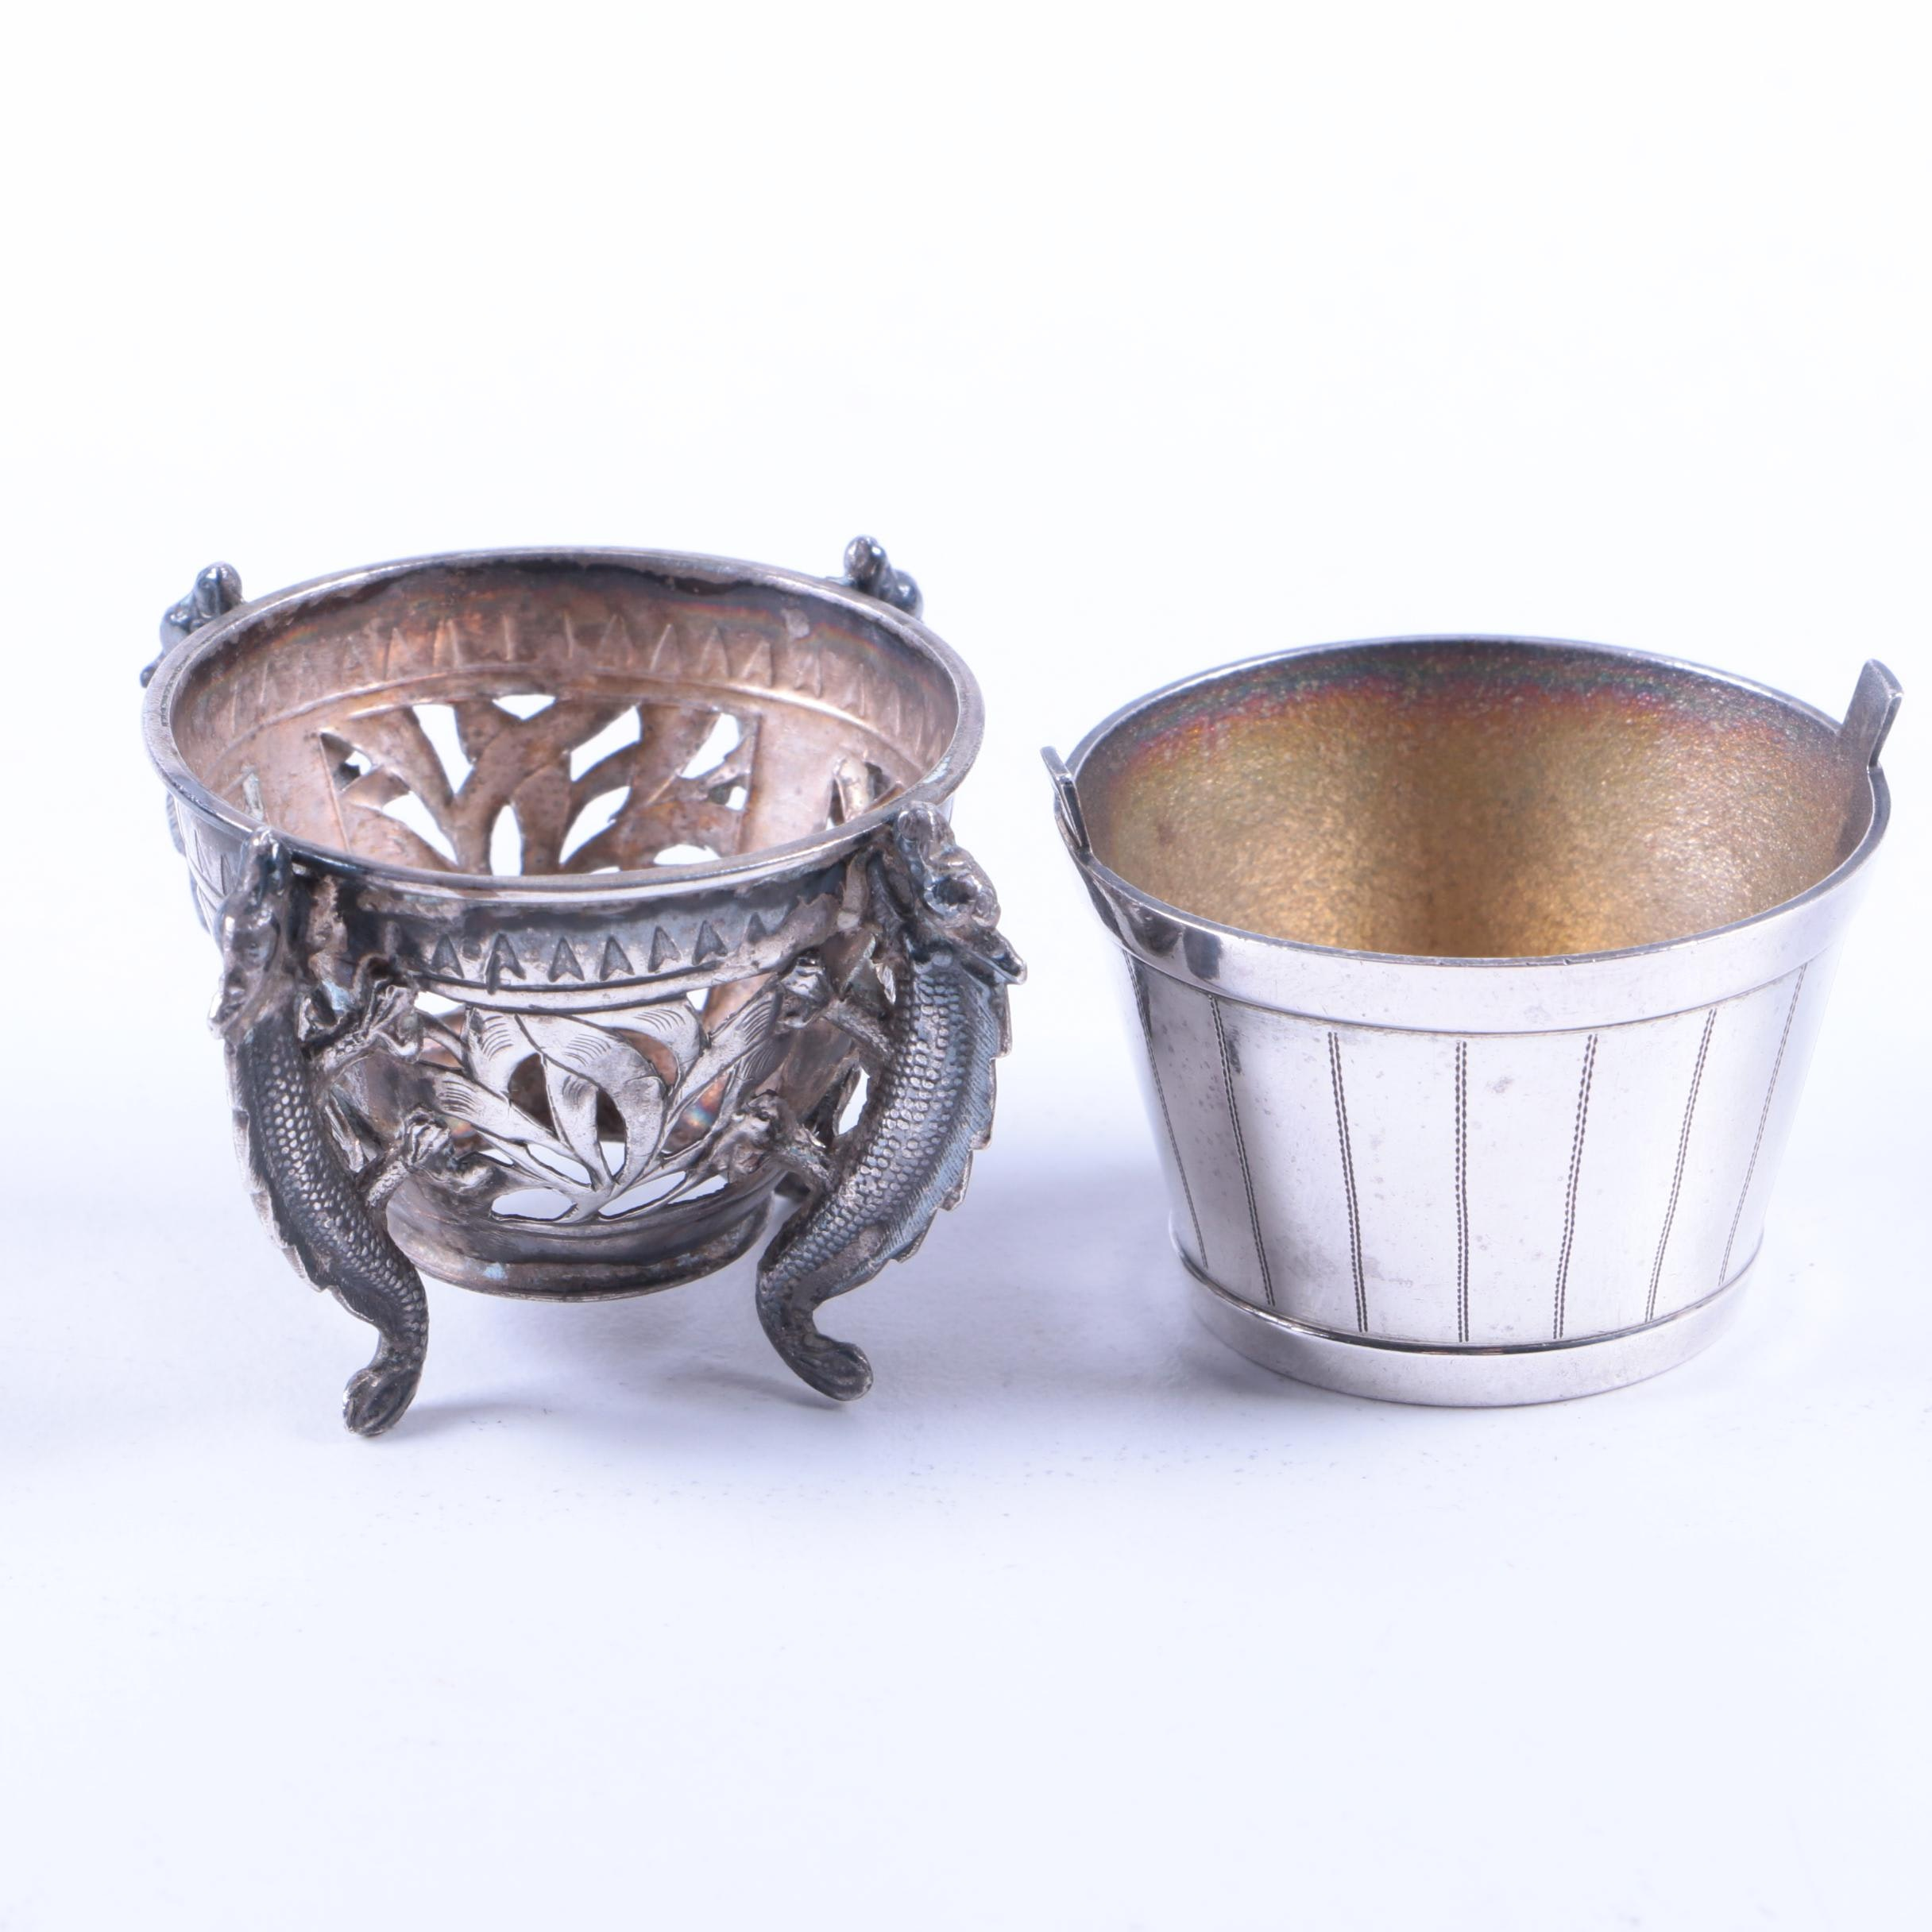 Whiting Mfg. Co. Sterling Silver Barrel Salt Cellar with Openwork Dragon Cellar